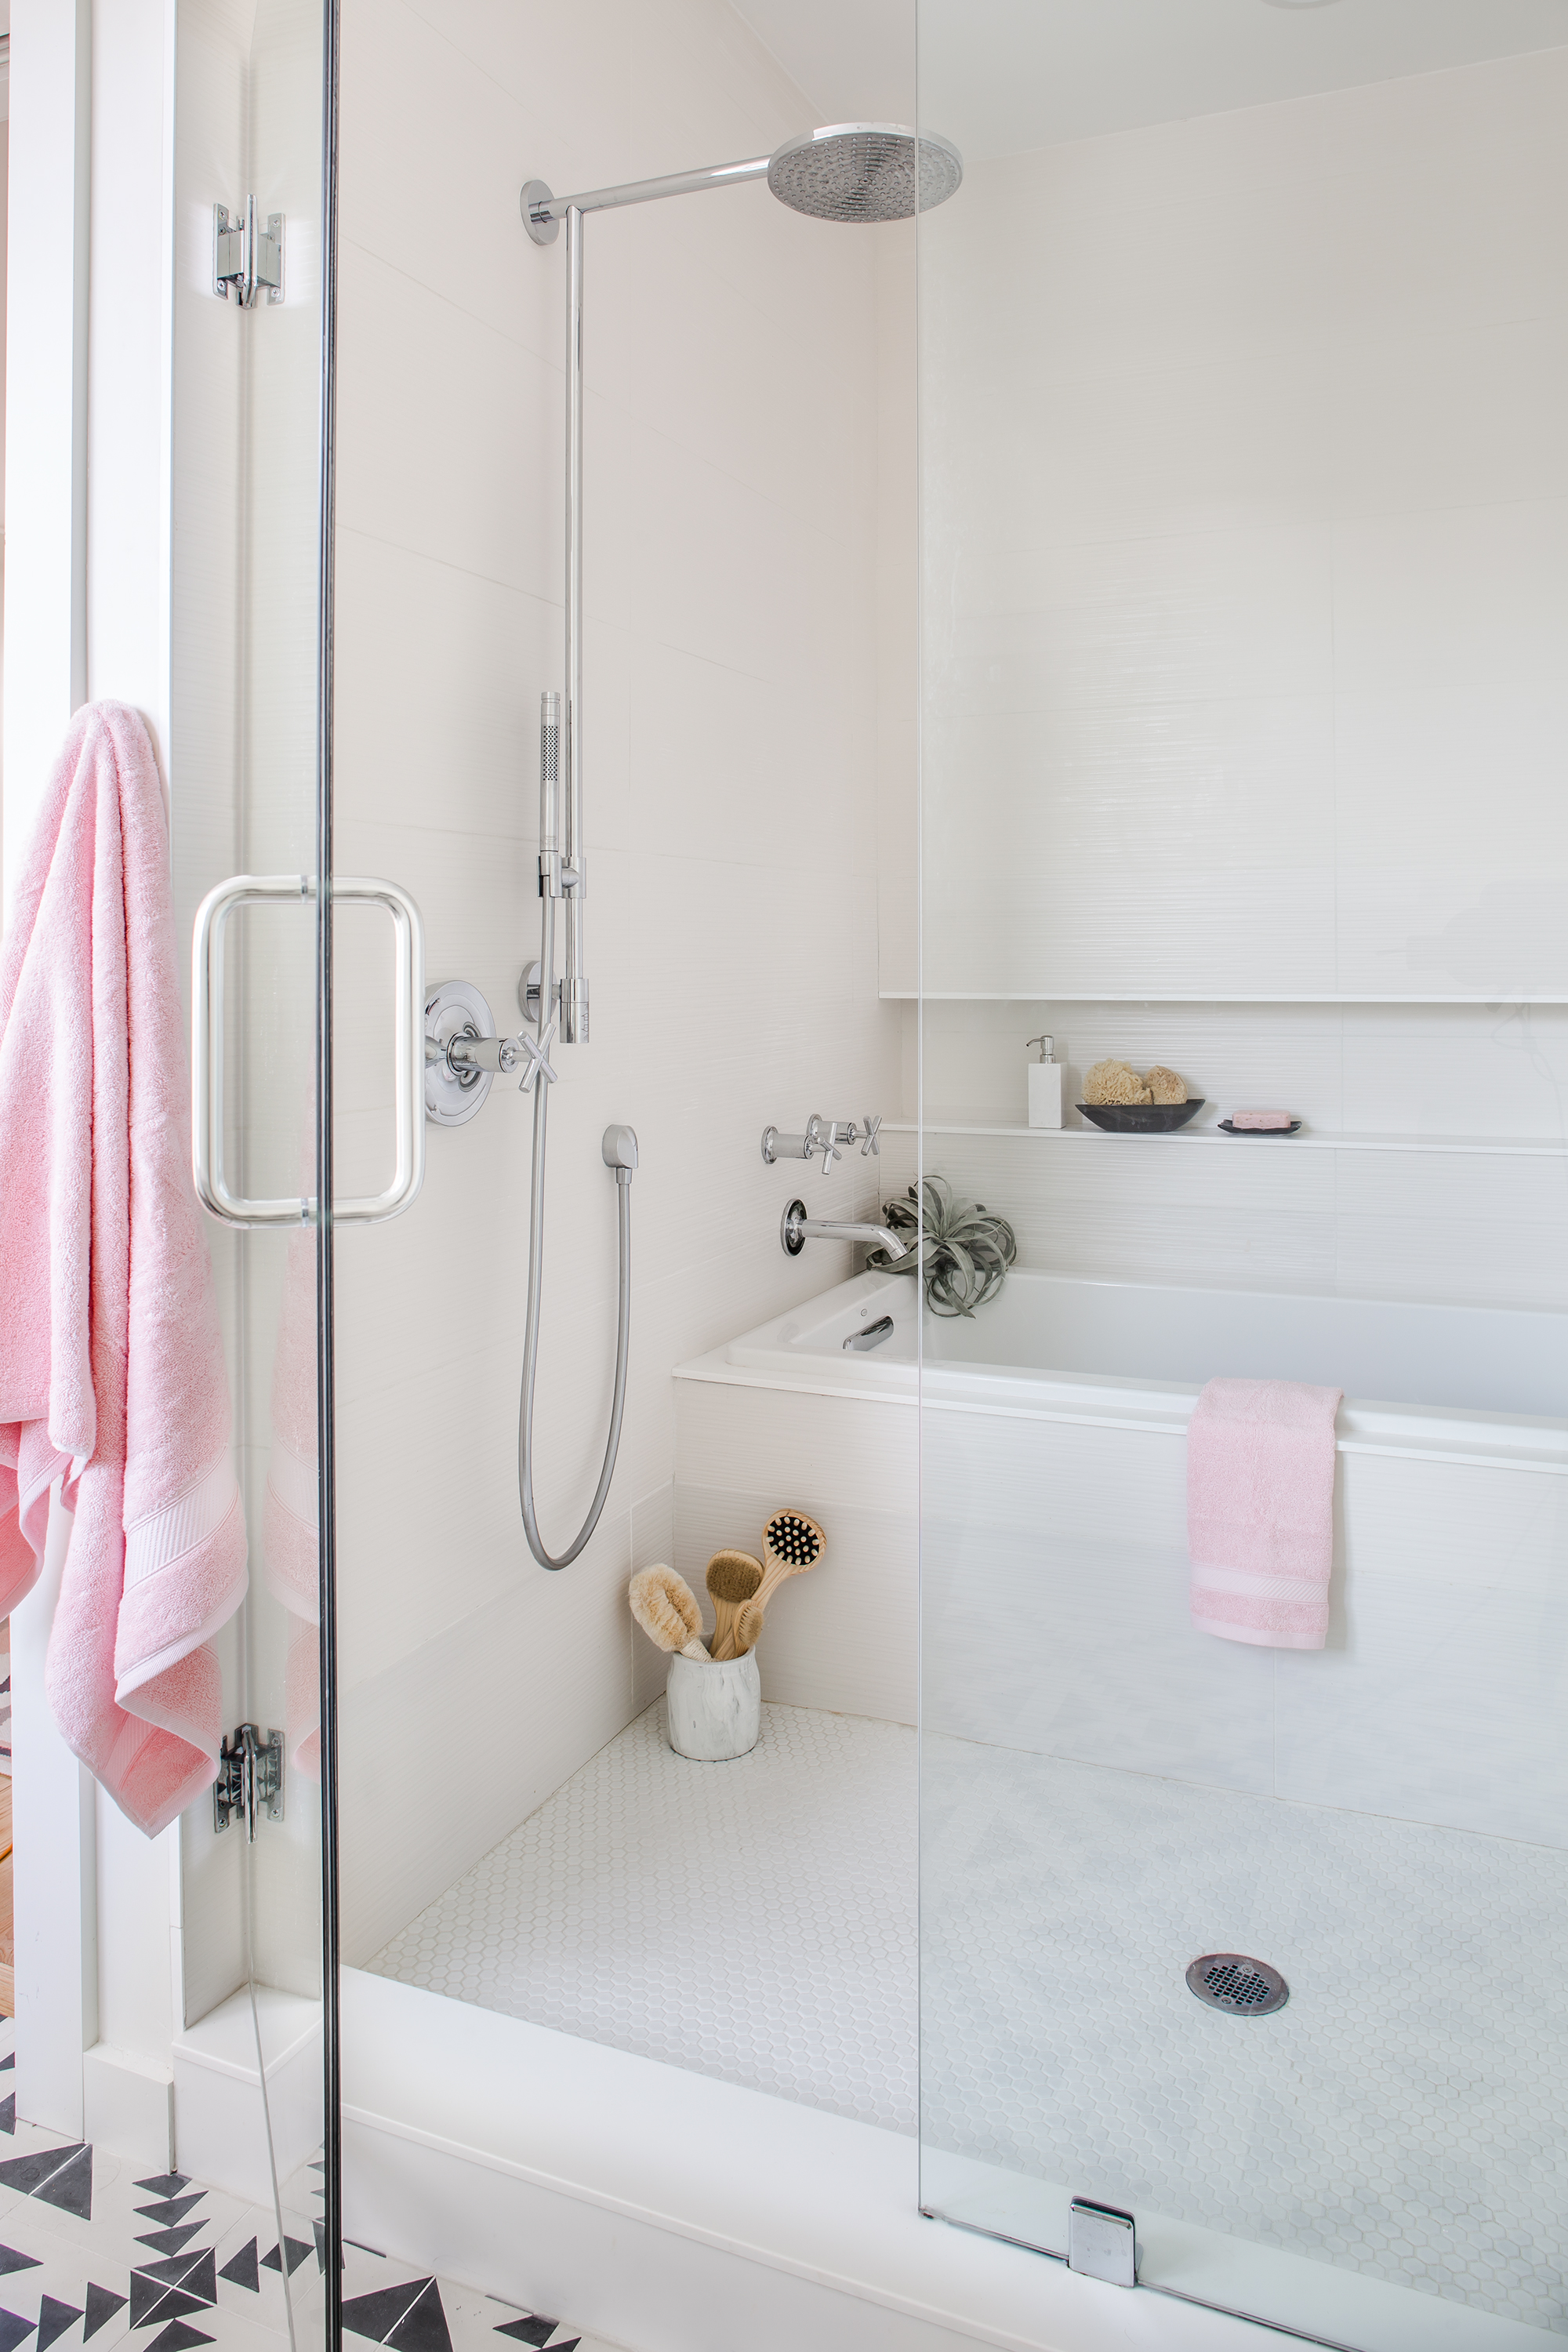 modern on connecticut ave master bath shower and tub   jeff herr photography